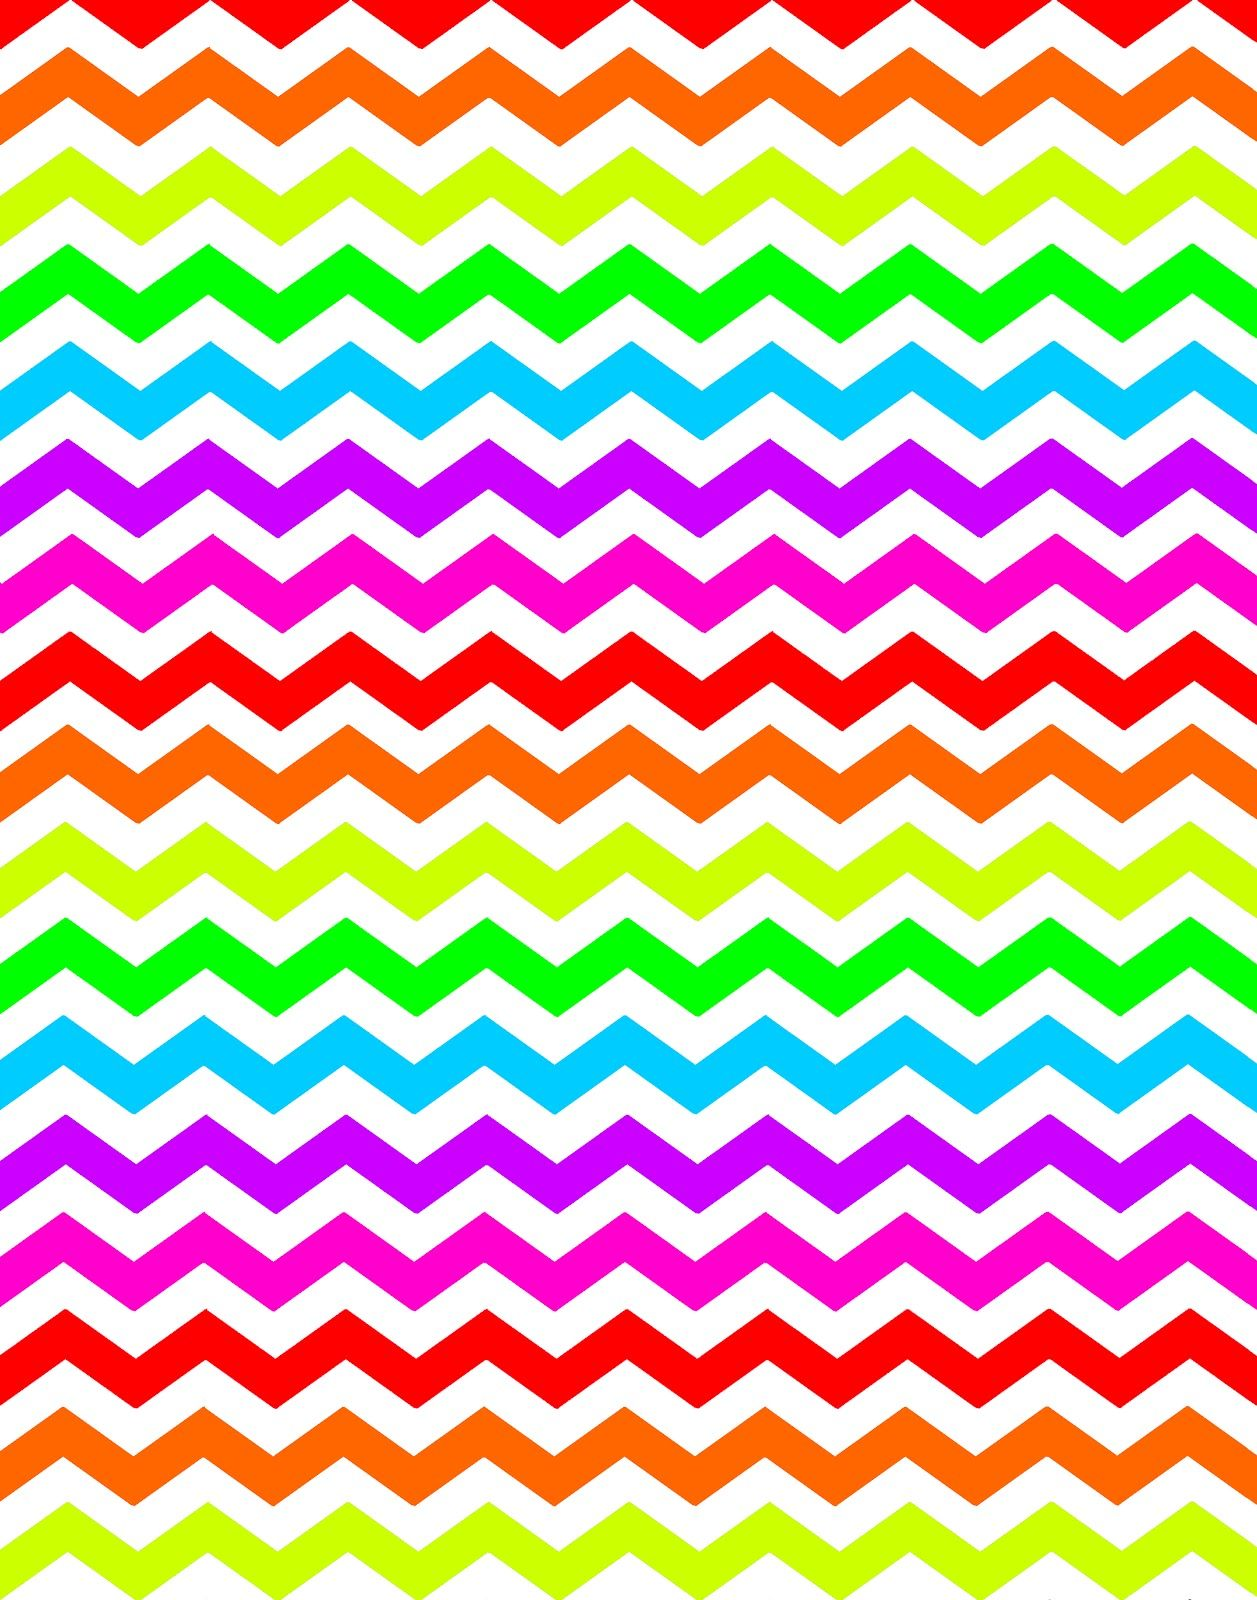 Colorful Polka Dot Backgrounds Doodle Craft 16 New Colors